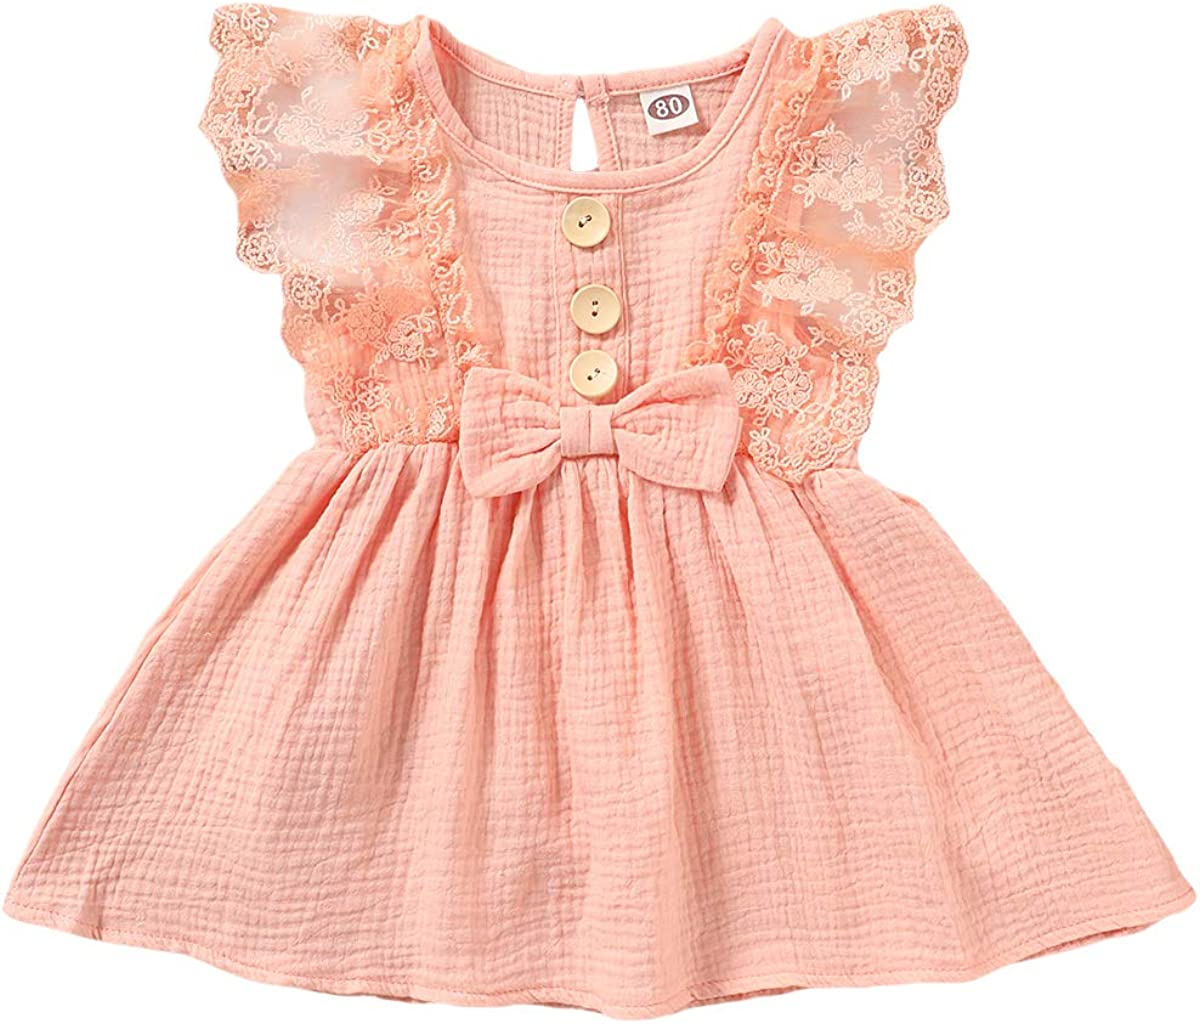 Infant Girls Summer Outfit Halter Sleeveless Solid Color Linen Cotton Dress Sundress Tank Tops Baby Minimalist Clothes